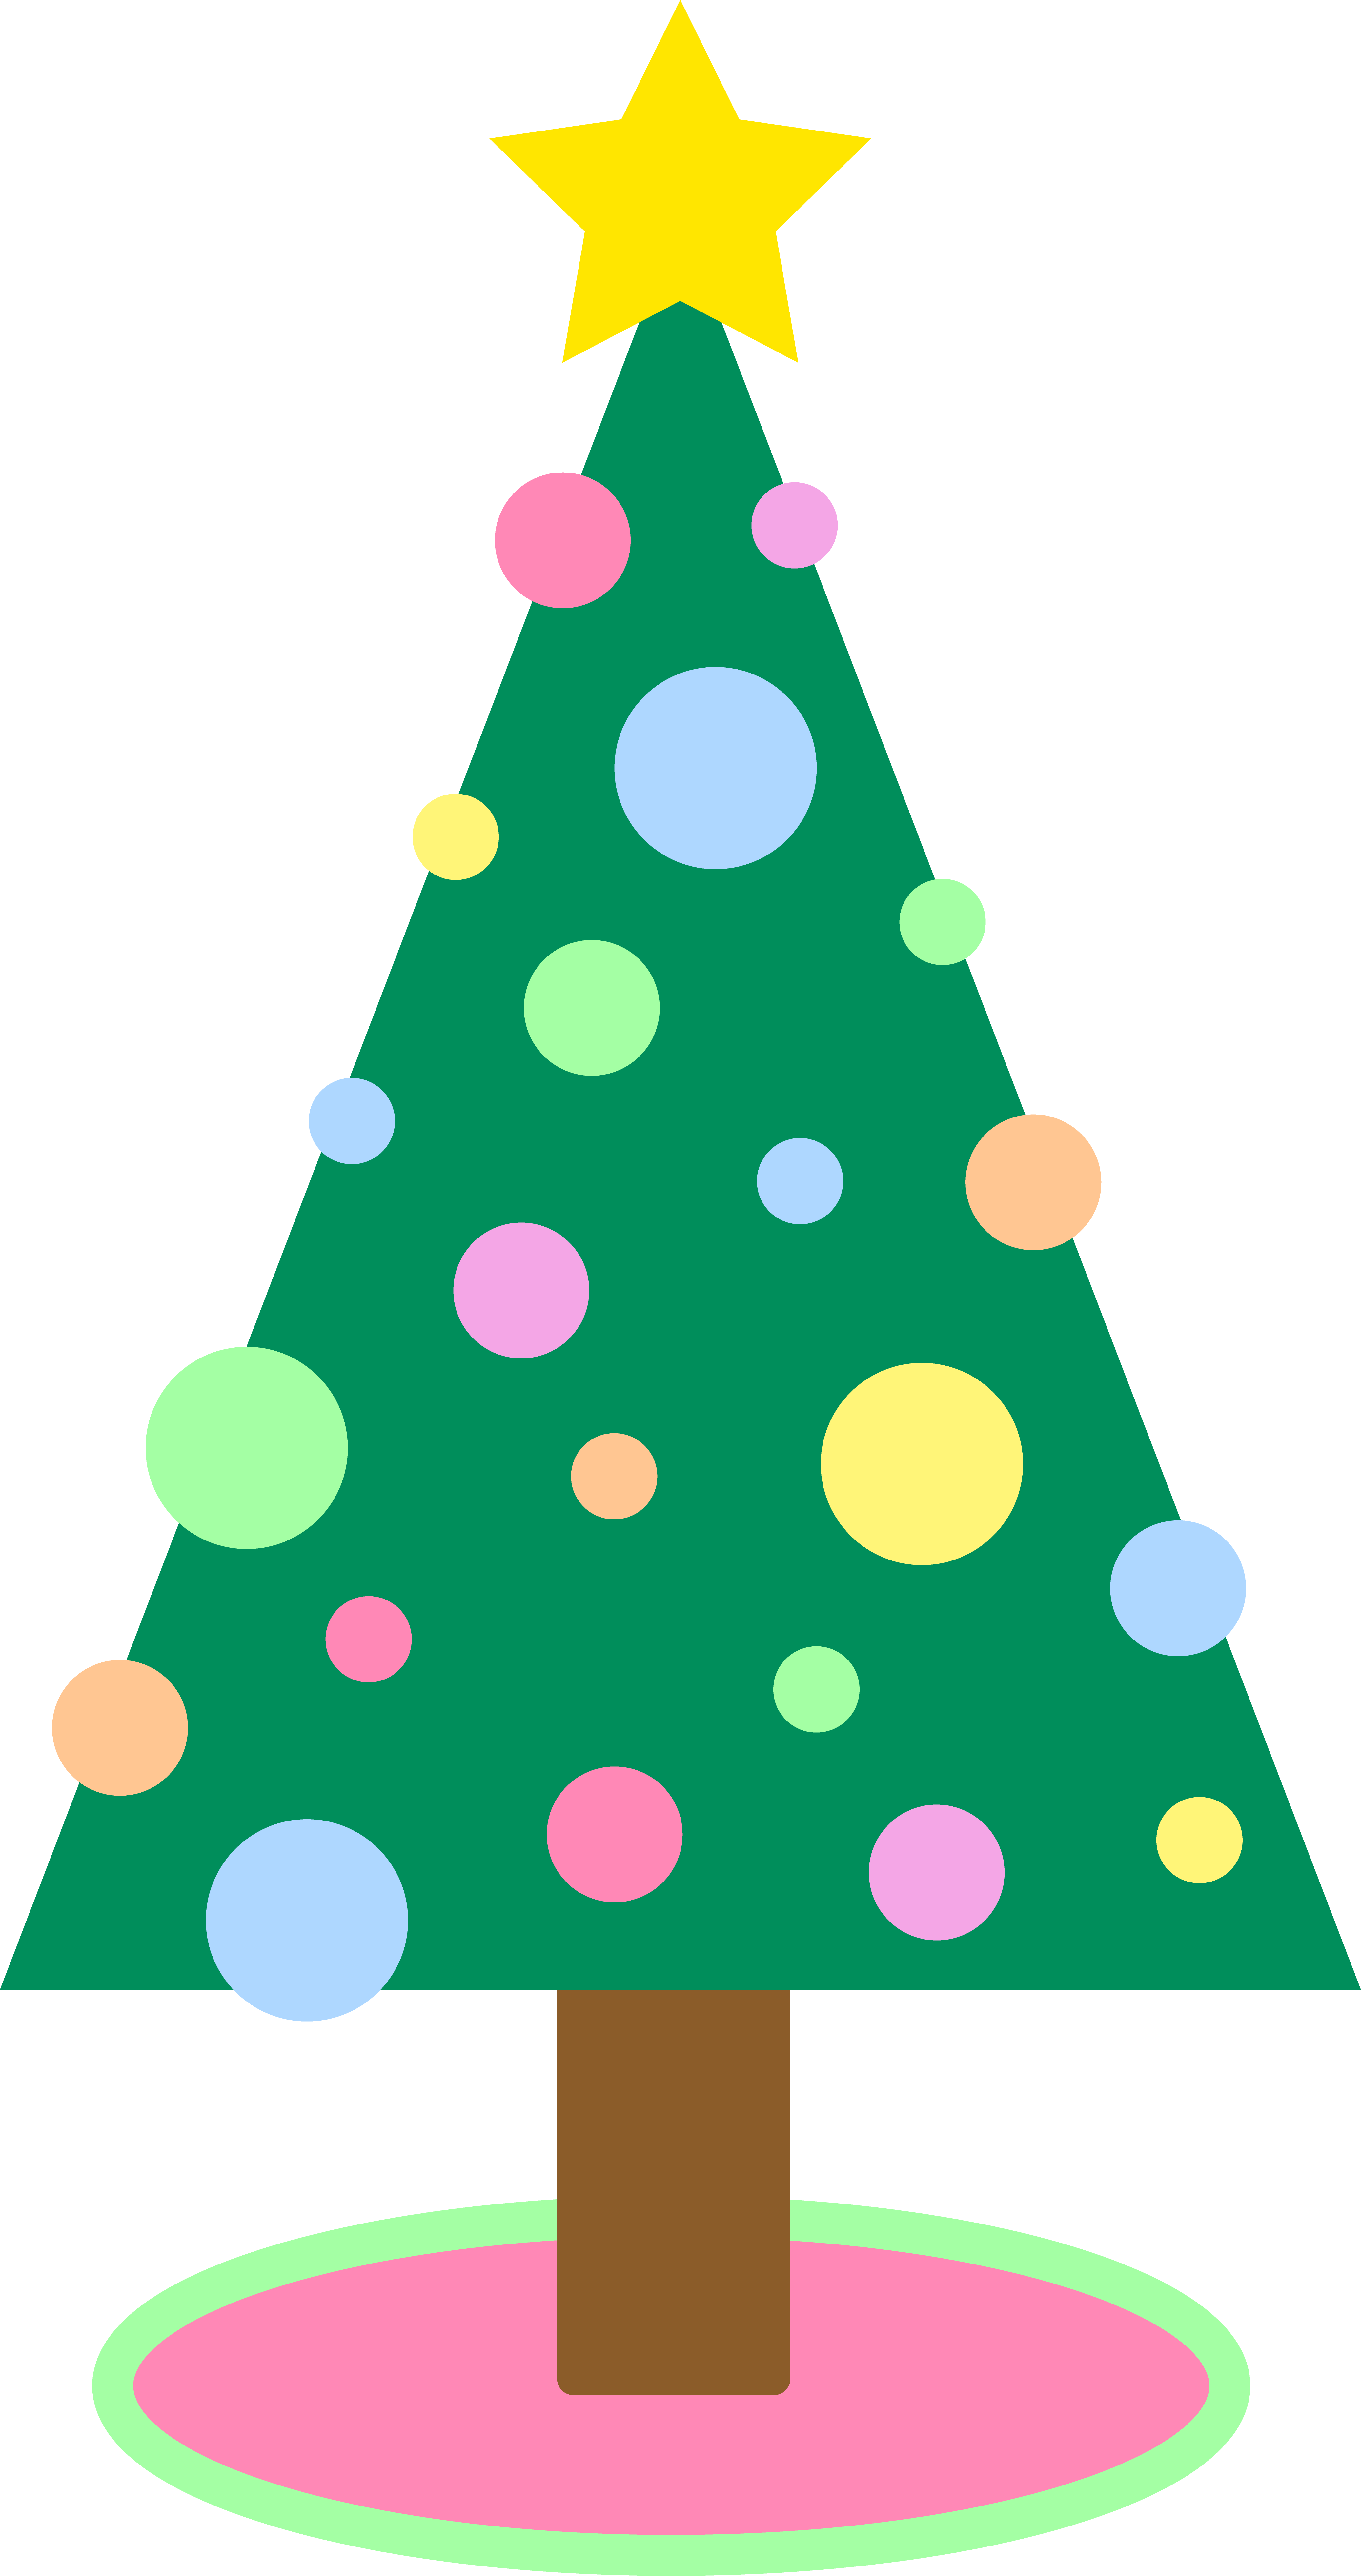 Holidays clipart cute. Christmas colors collection tree